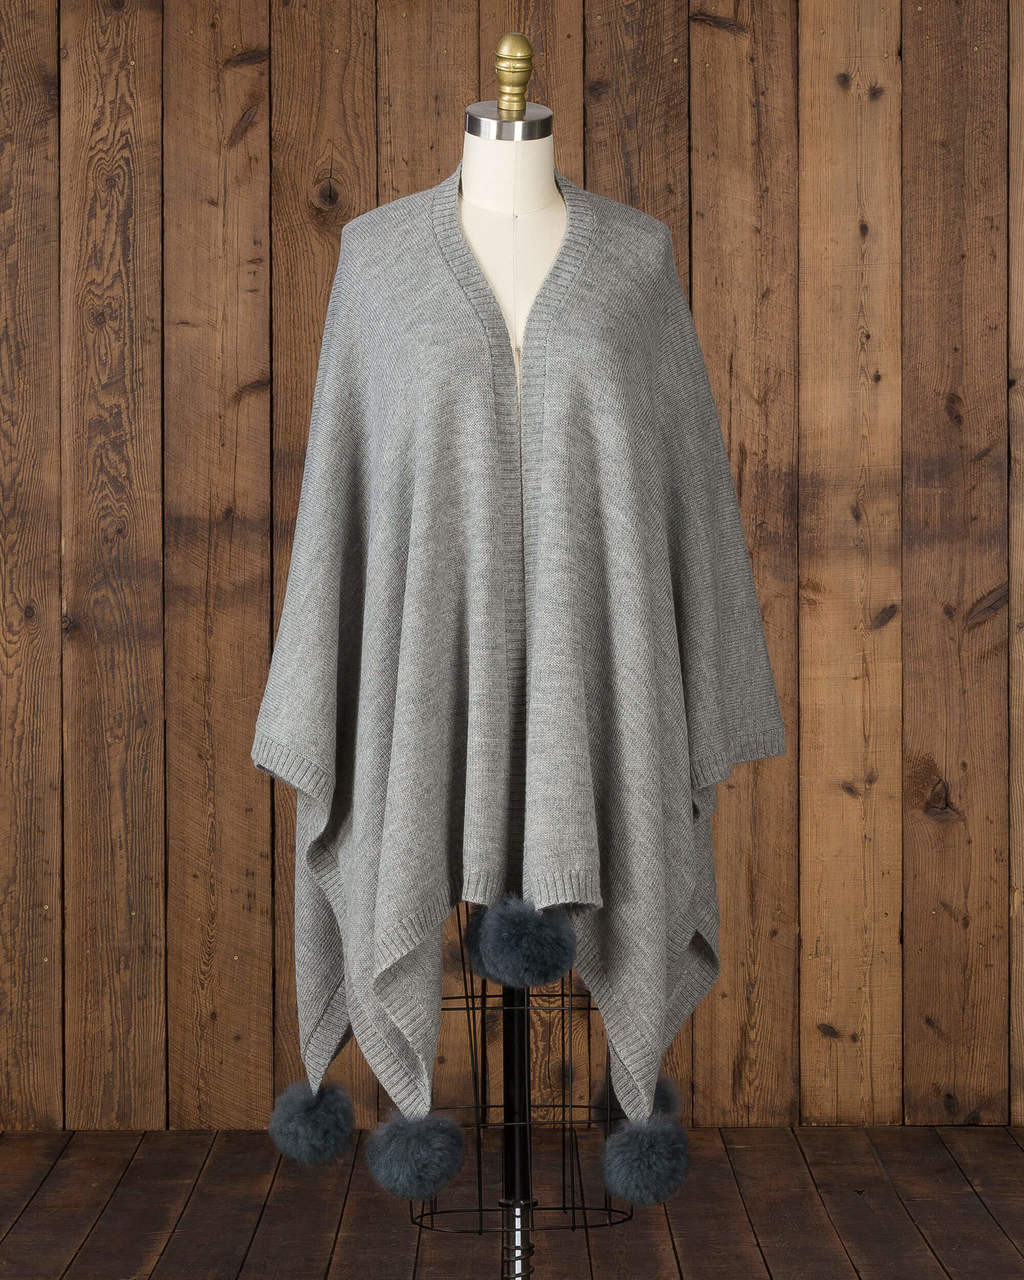 alicia adams alpaca alpina cape, alpaca cape with fur trim, alpaca poncho, alpaca poncho womens, alpaca vs cashmere, light grey baby alpaca cape